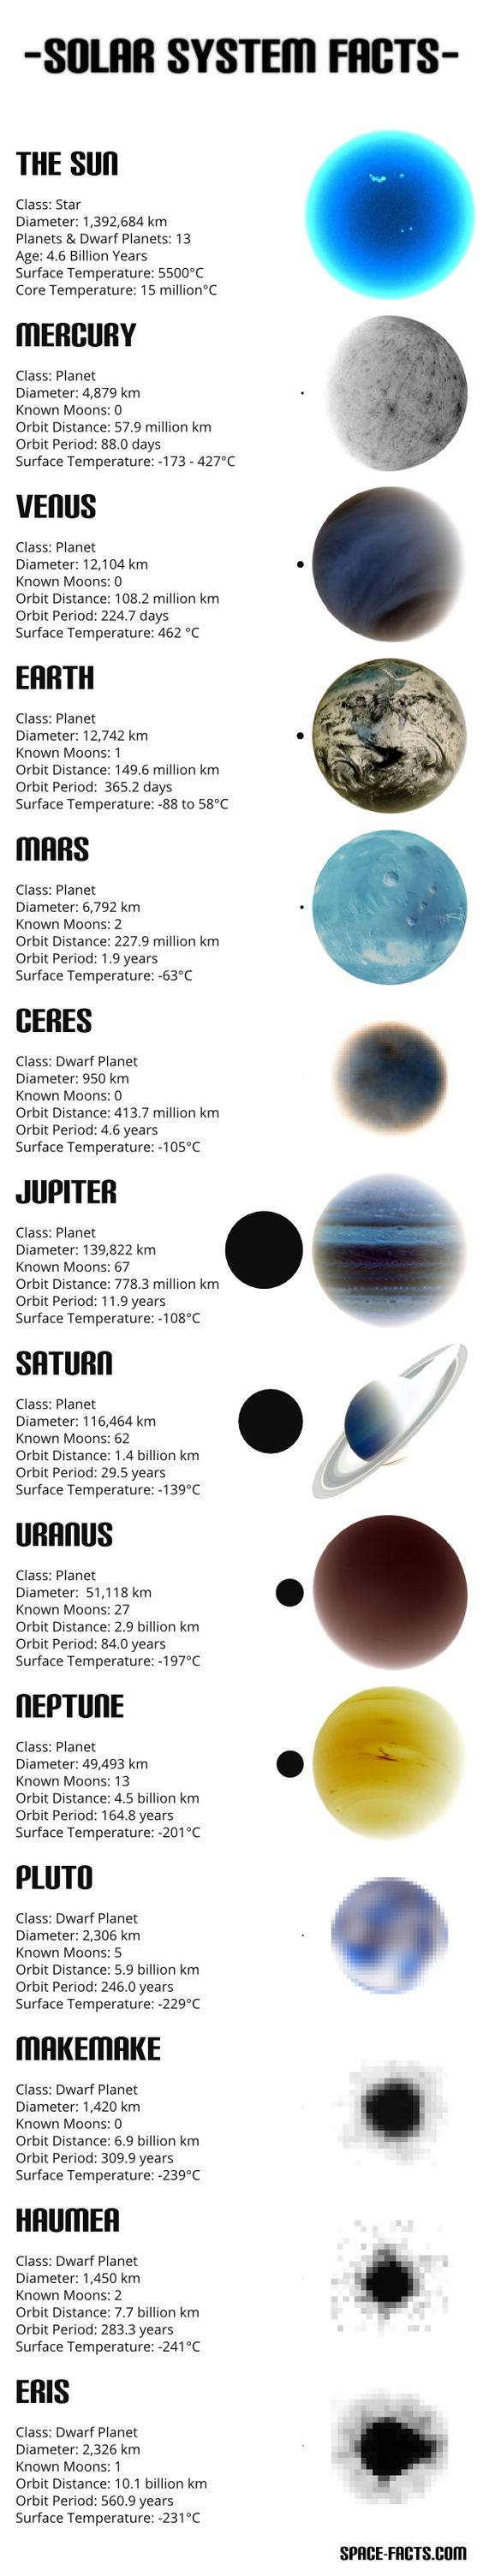 "Solar System Information Chart - Fast Facts about our Sun and the 8 planets plus the 5 ""dwarf planets"" Ceres, Pluto, Makemake, Haumea and Eris"